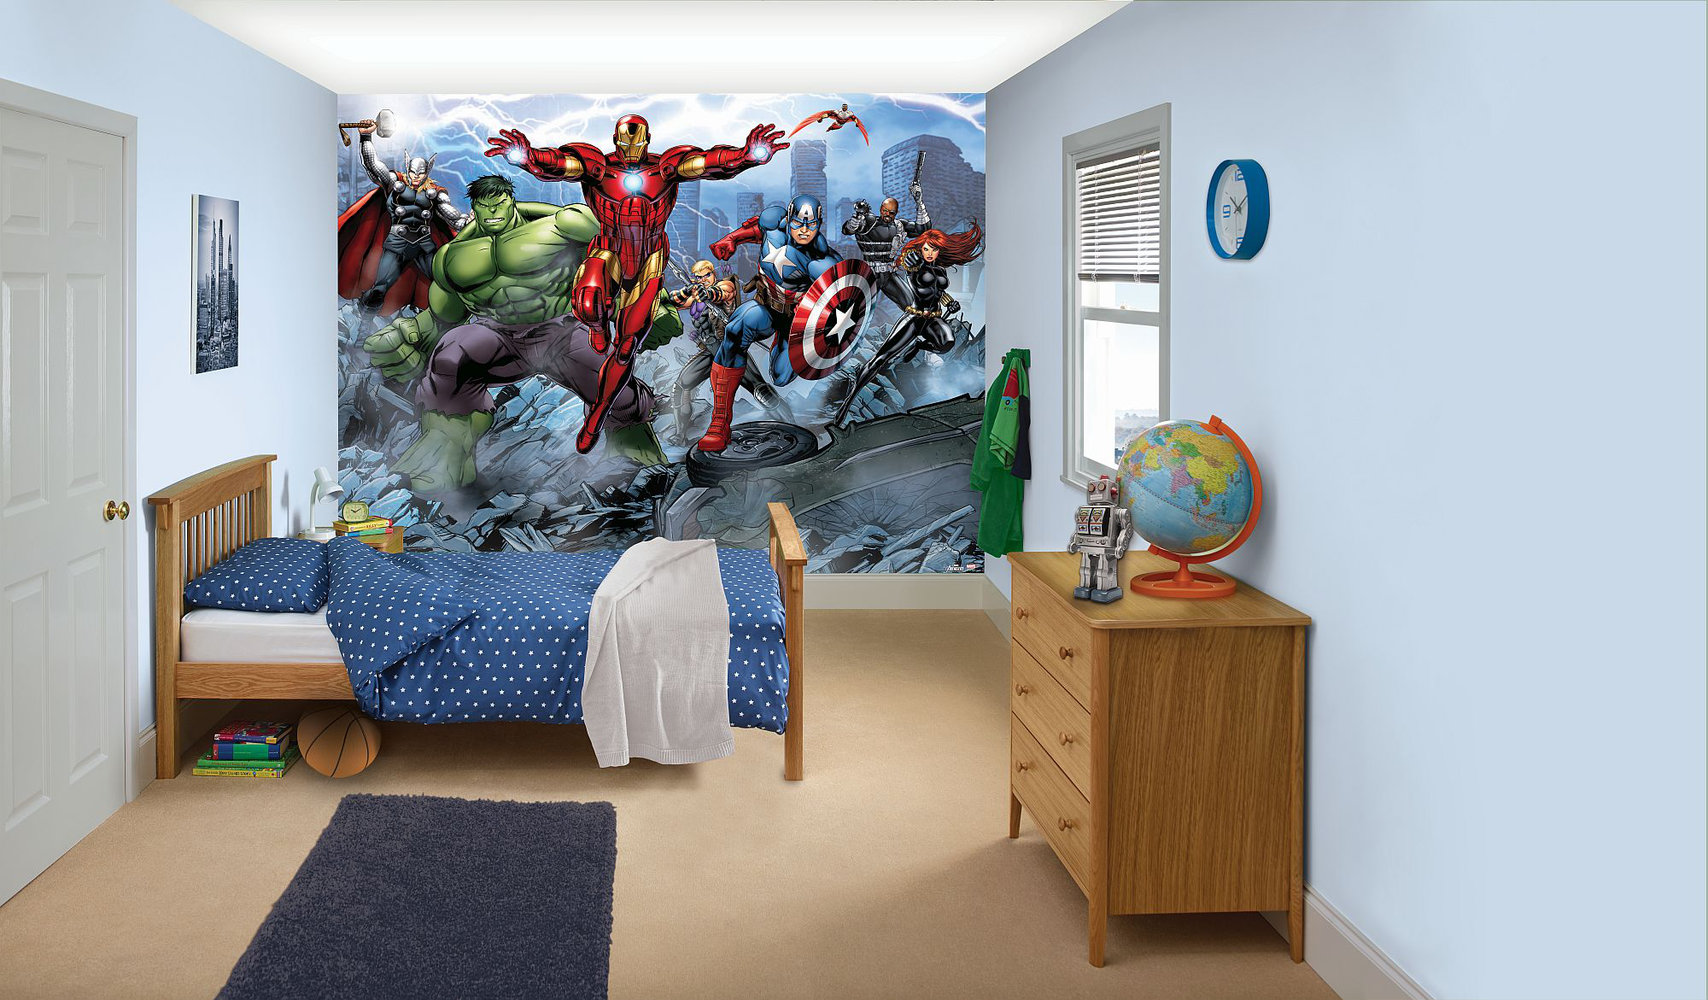 Avengers bedroom in a box by Walltastic : Wallpaper Direct